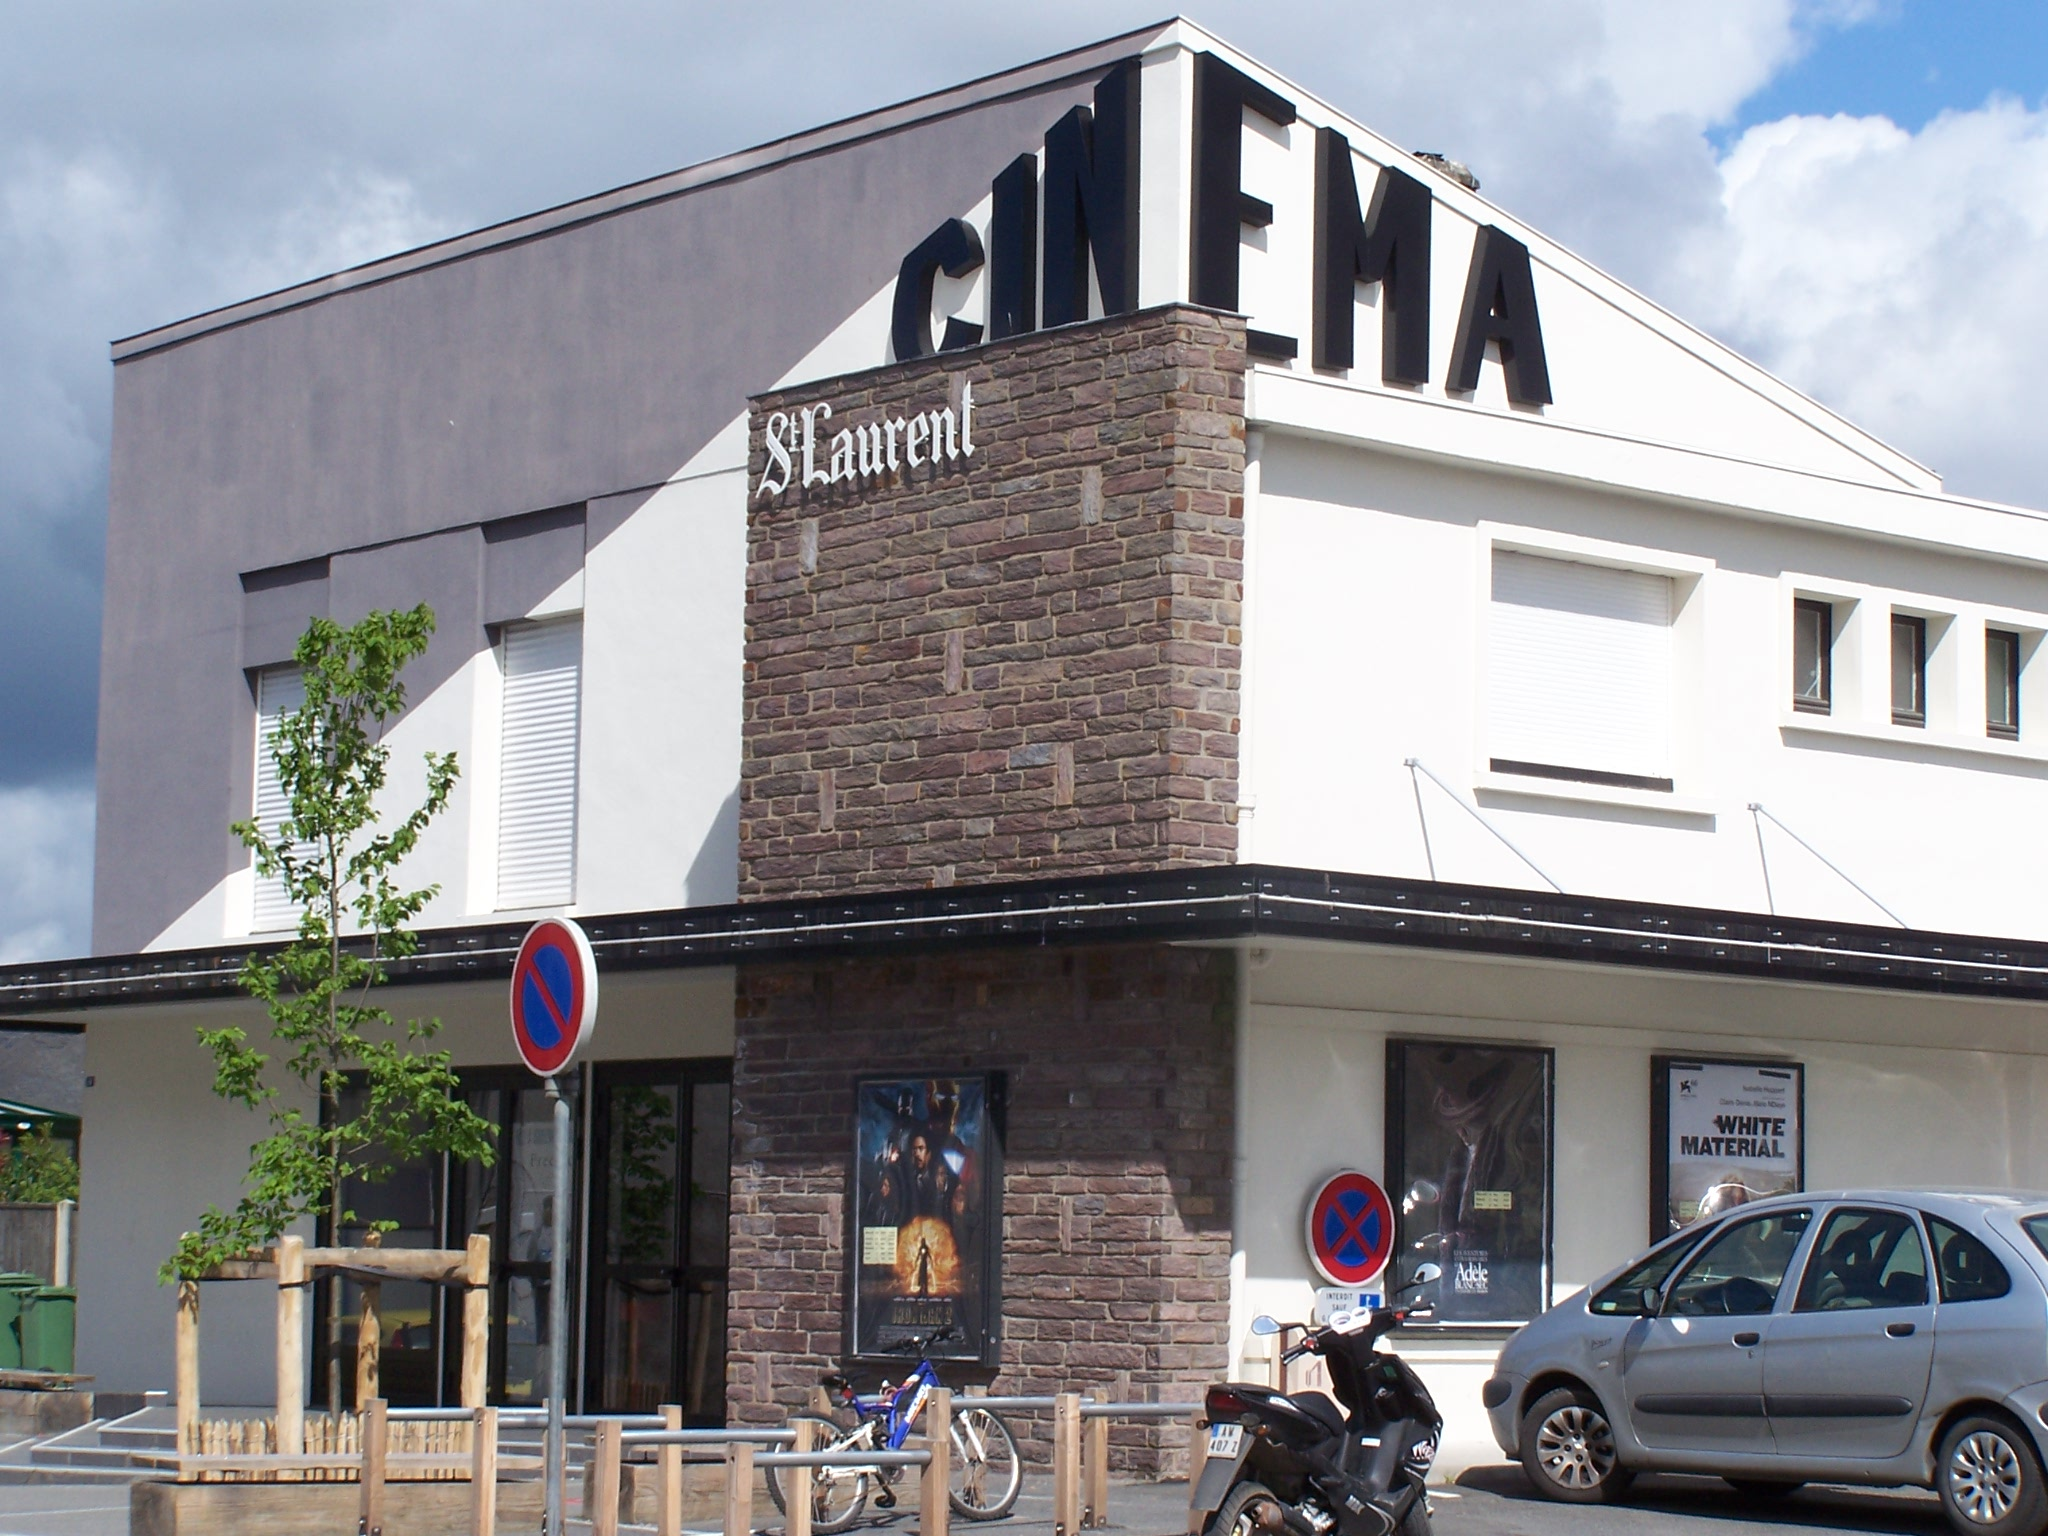 cinema saint laurent